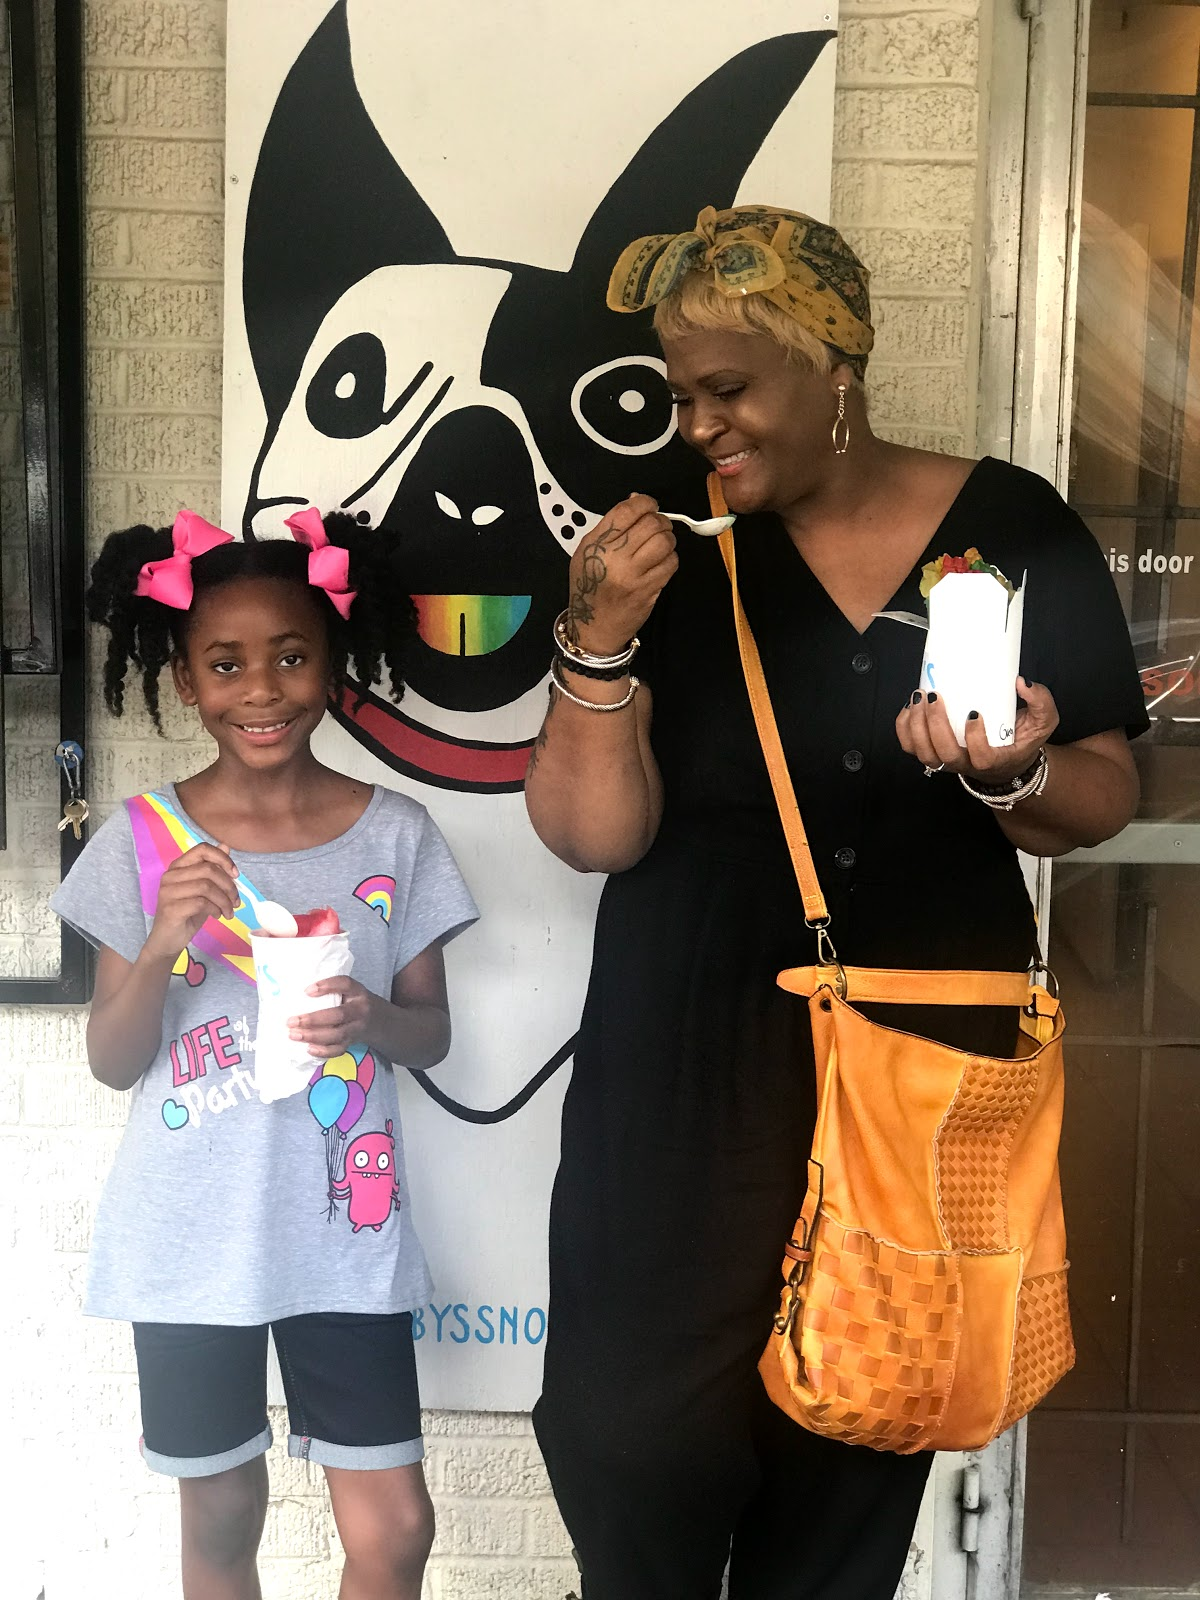 Image: Mom and Daughter posing for pictures at Ruby's snow cone place in Dallas Texas